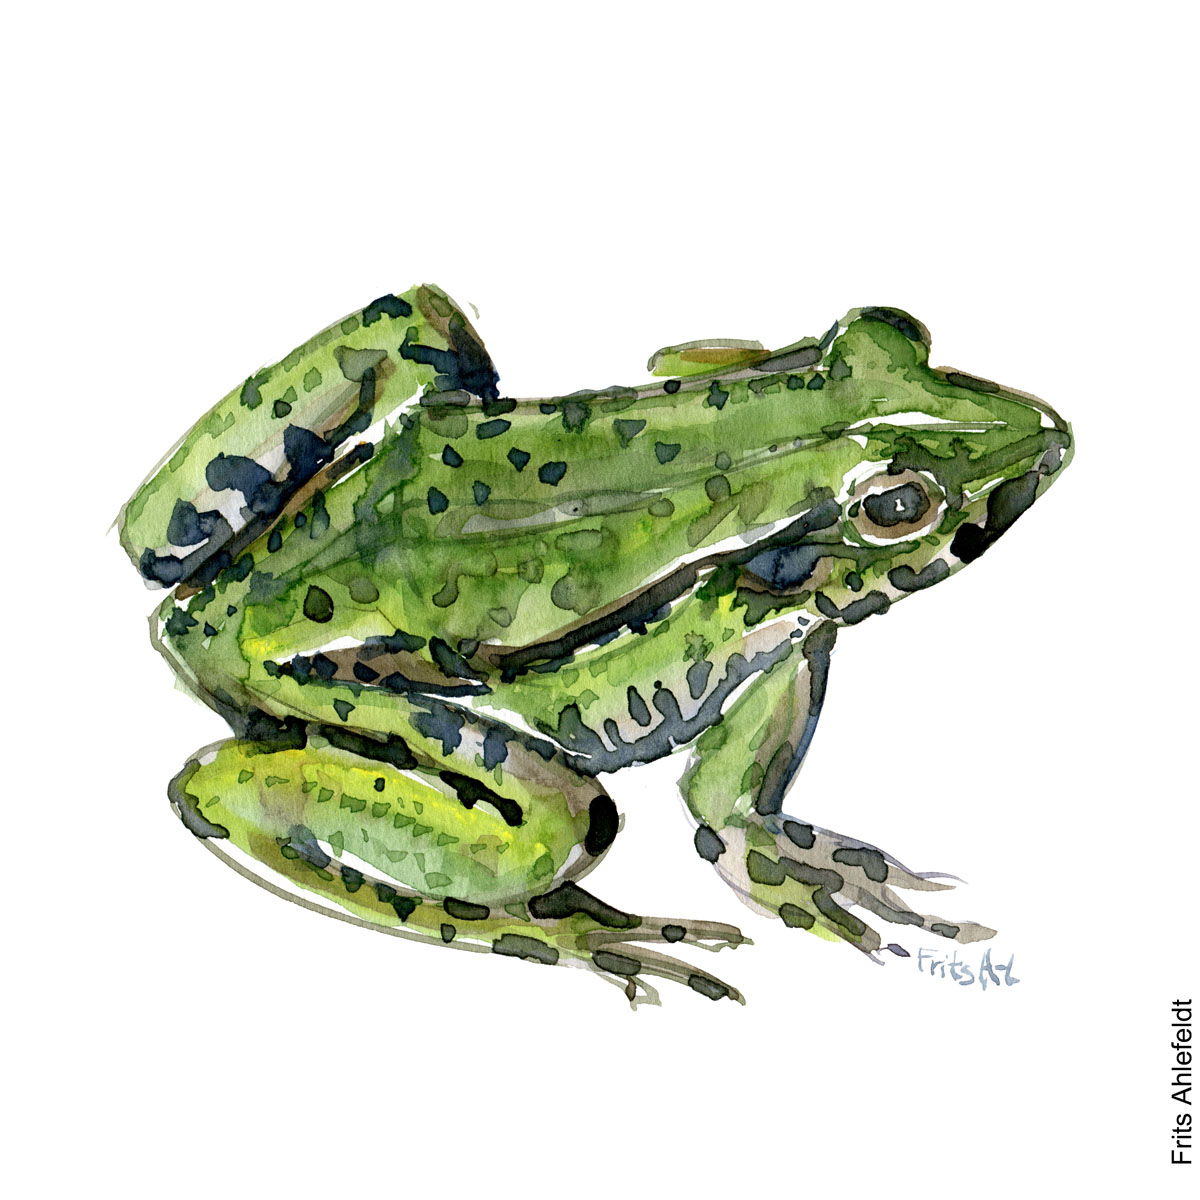 Illustration of edible frog. Watercolor by Frits Ahlefeldt